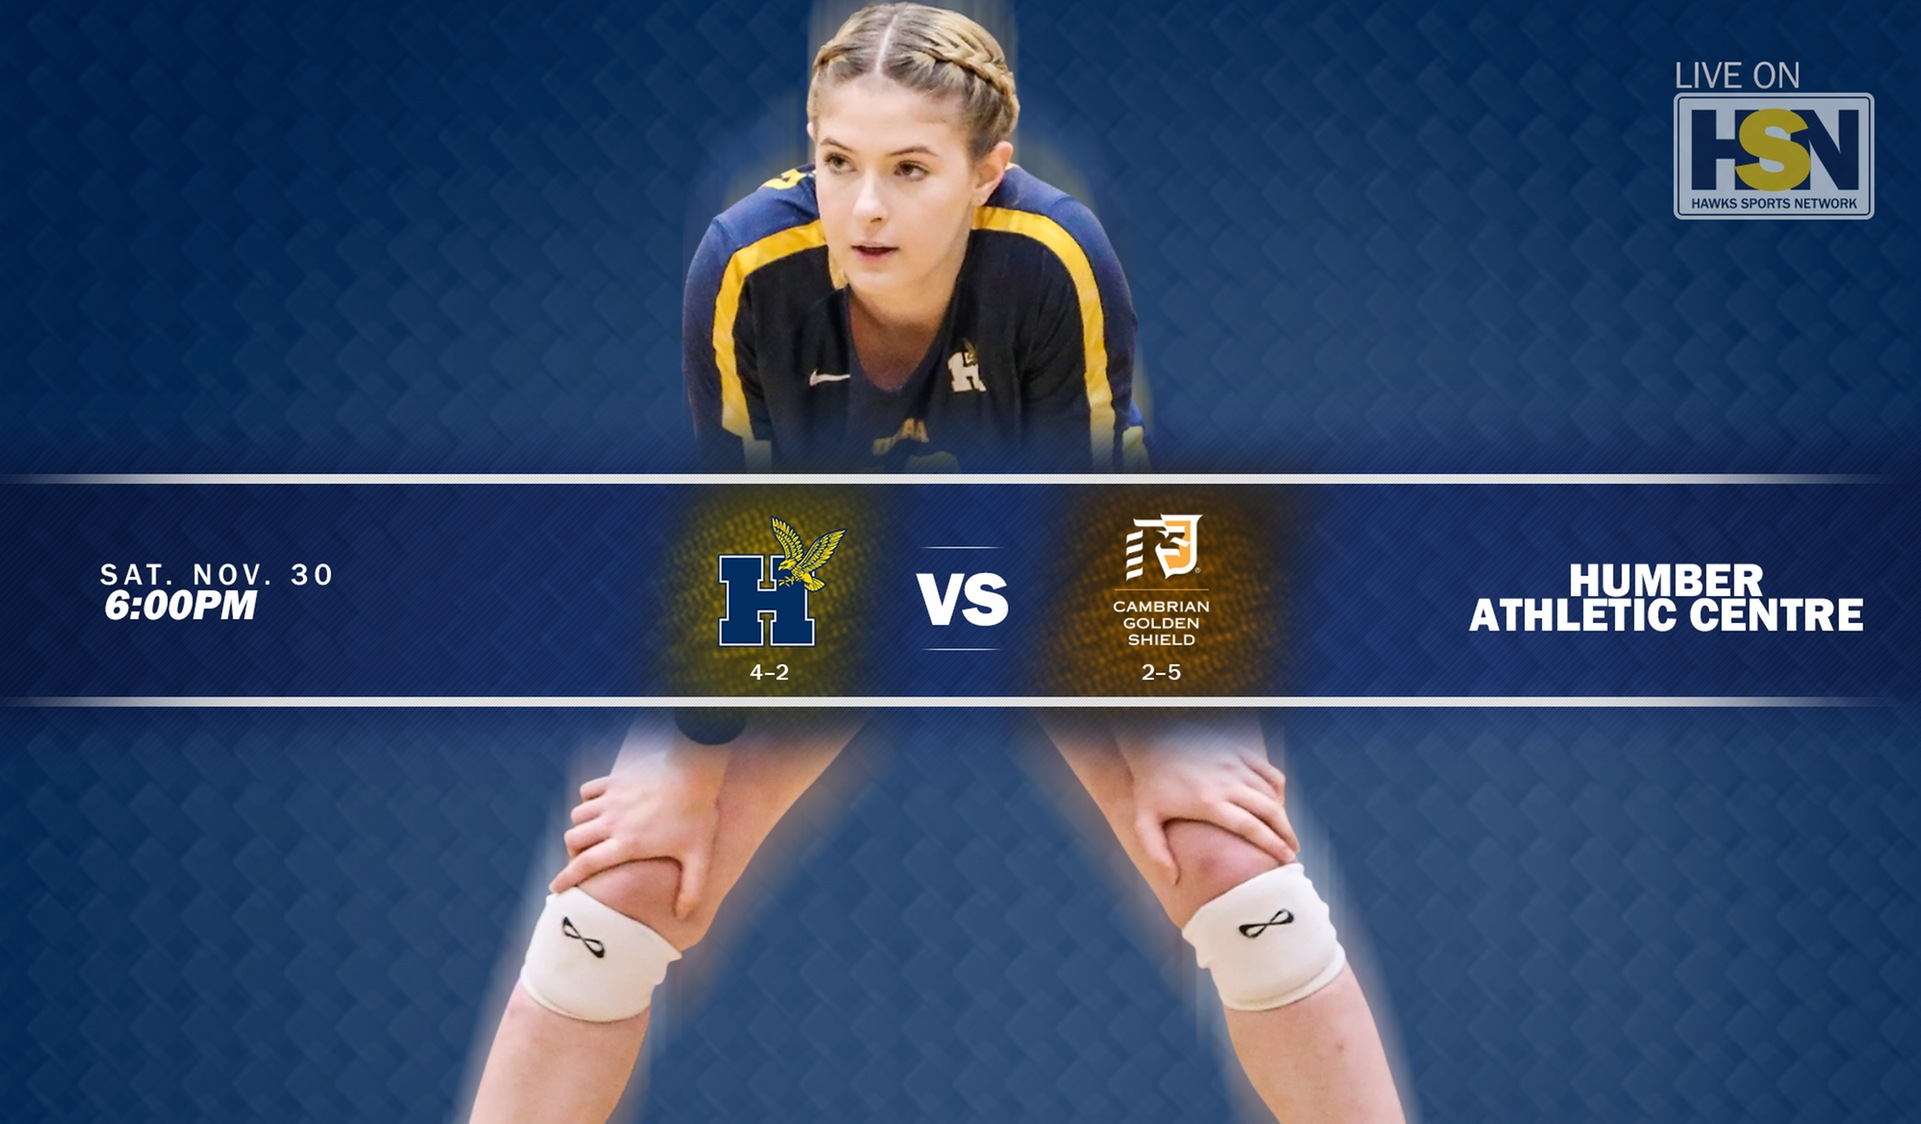 Weekend Doubleheader on Tap for No. 15 Women's Volleyball